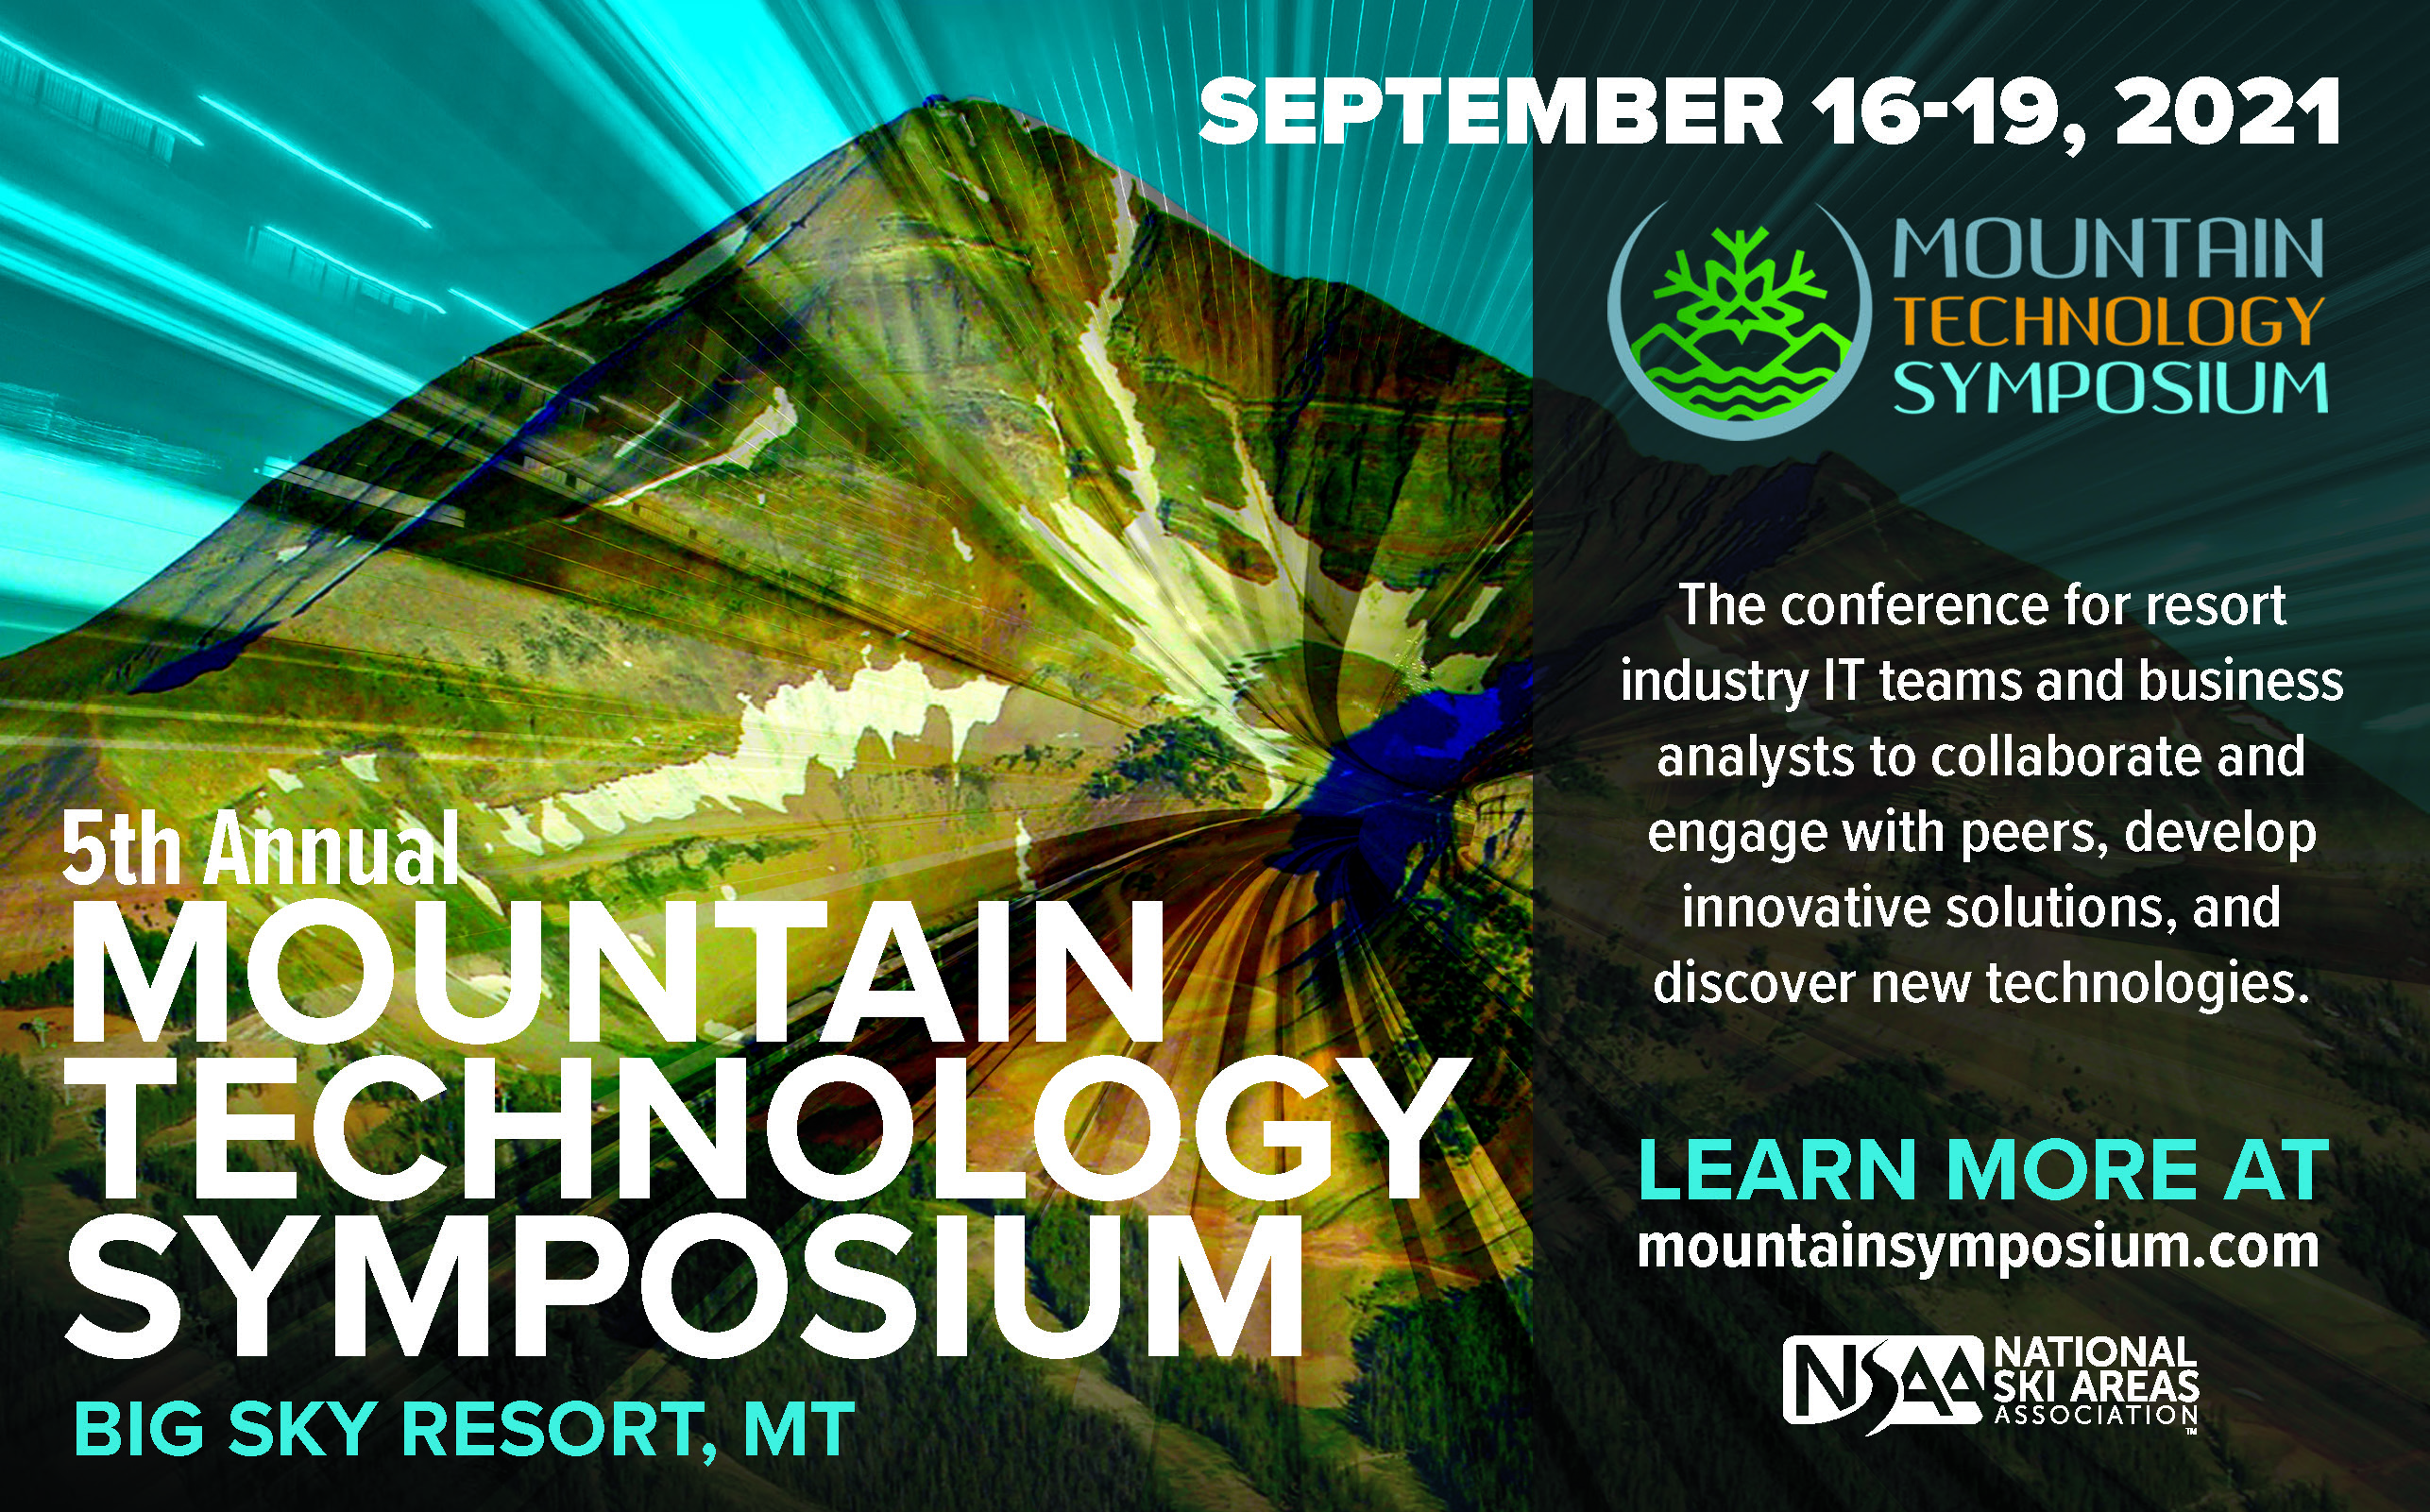 Mountain Technology Symposium flyer